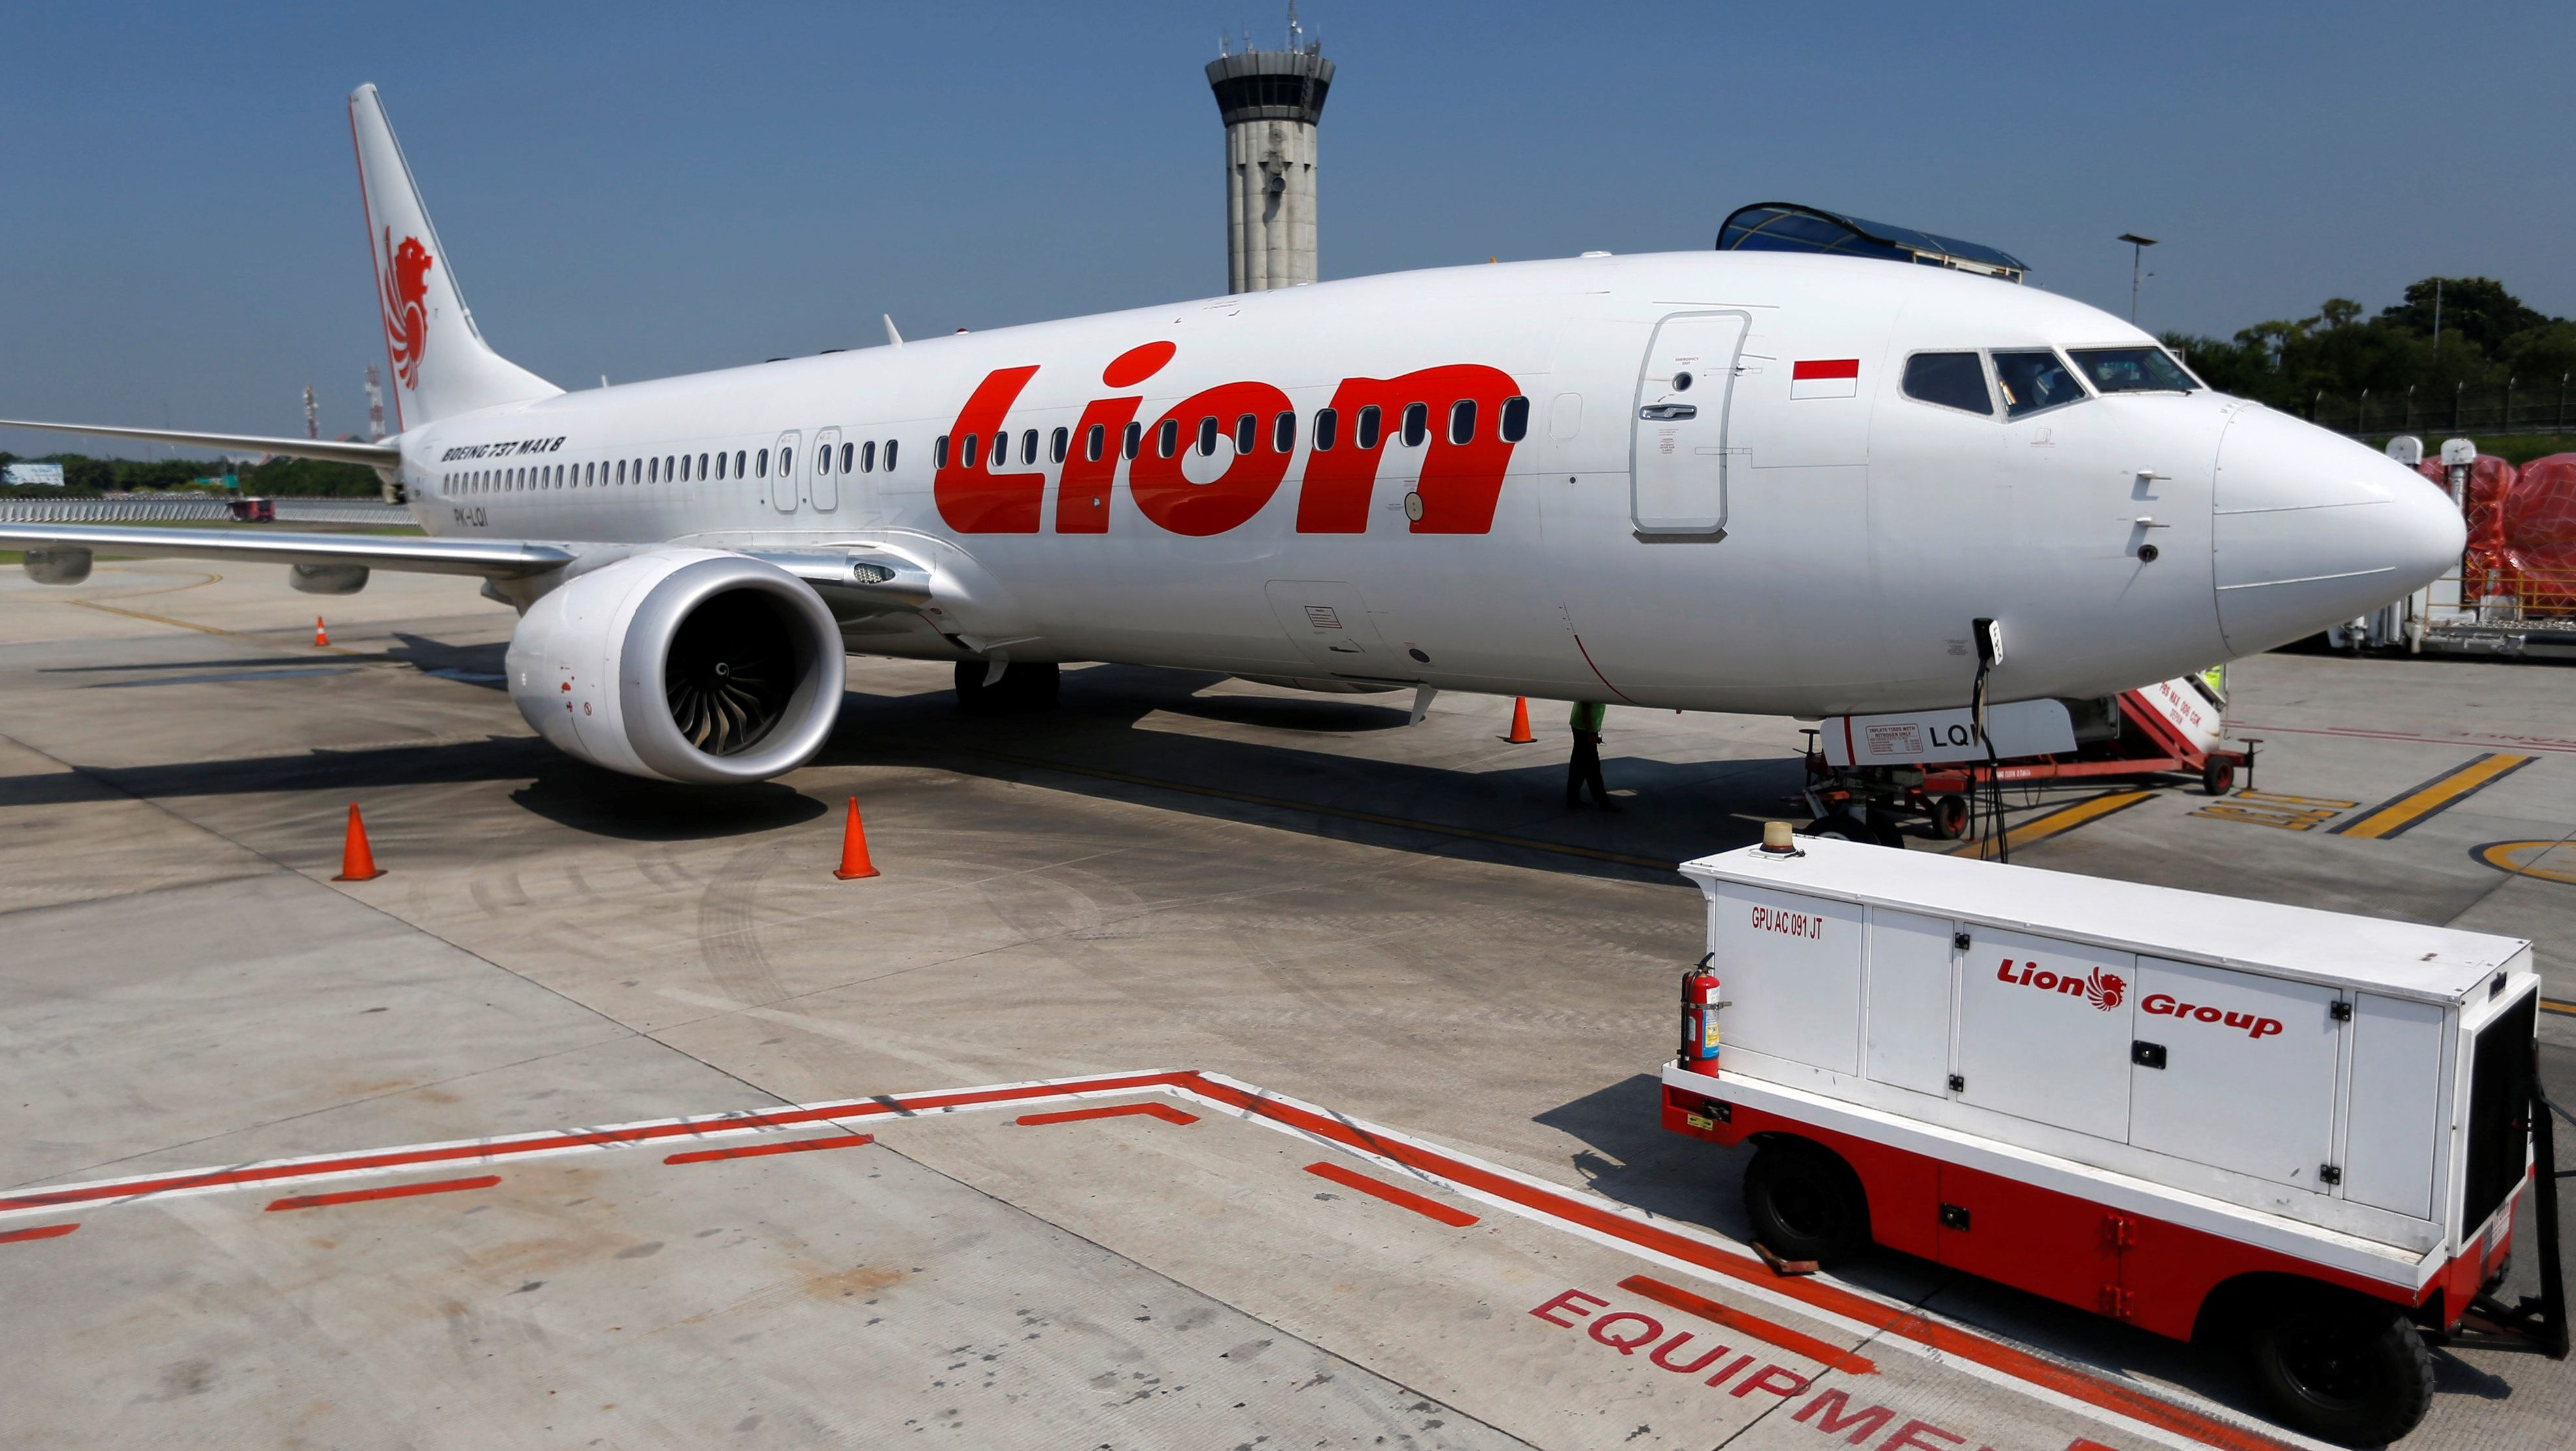 Off-duty pilot saved Lion Air's 737 Max the day before its fatal